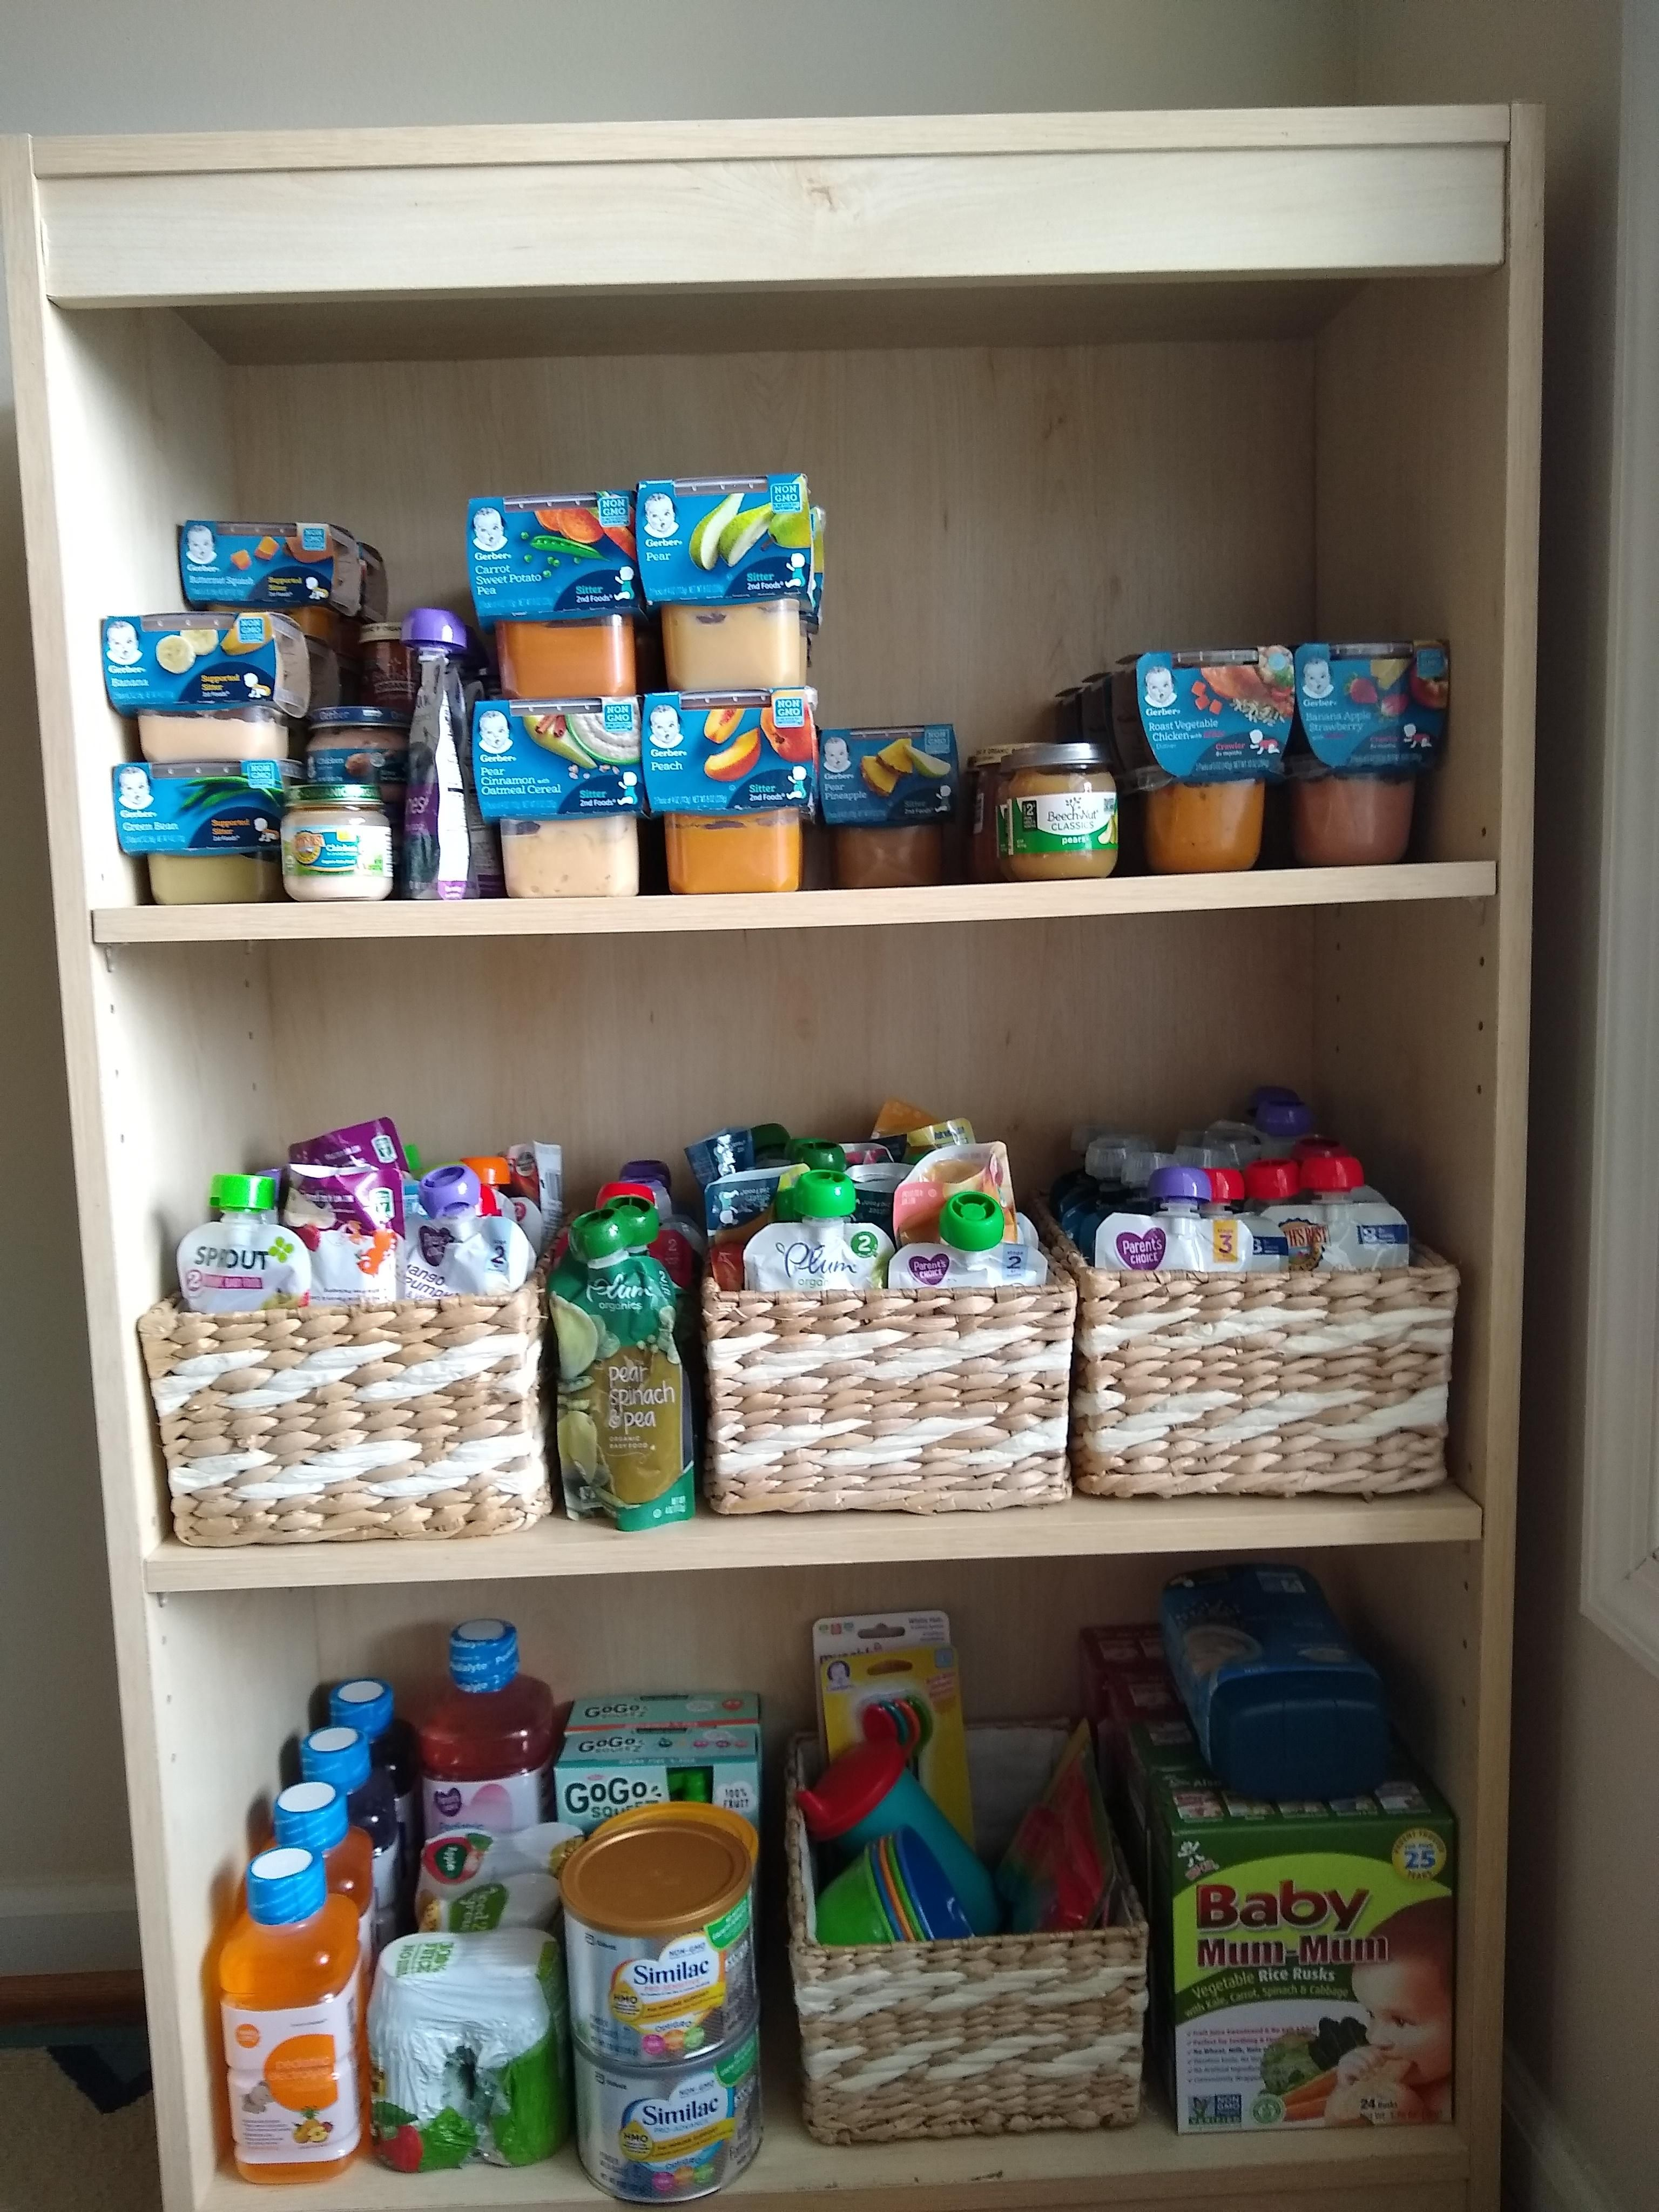 Oc] Baby Food Bookshelf Top And Middle Shelves Are